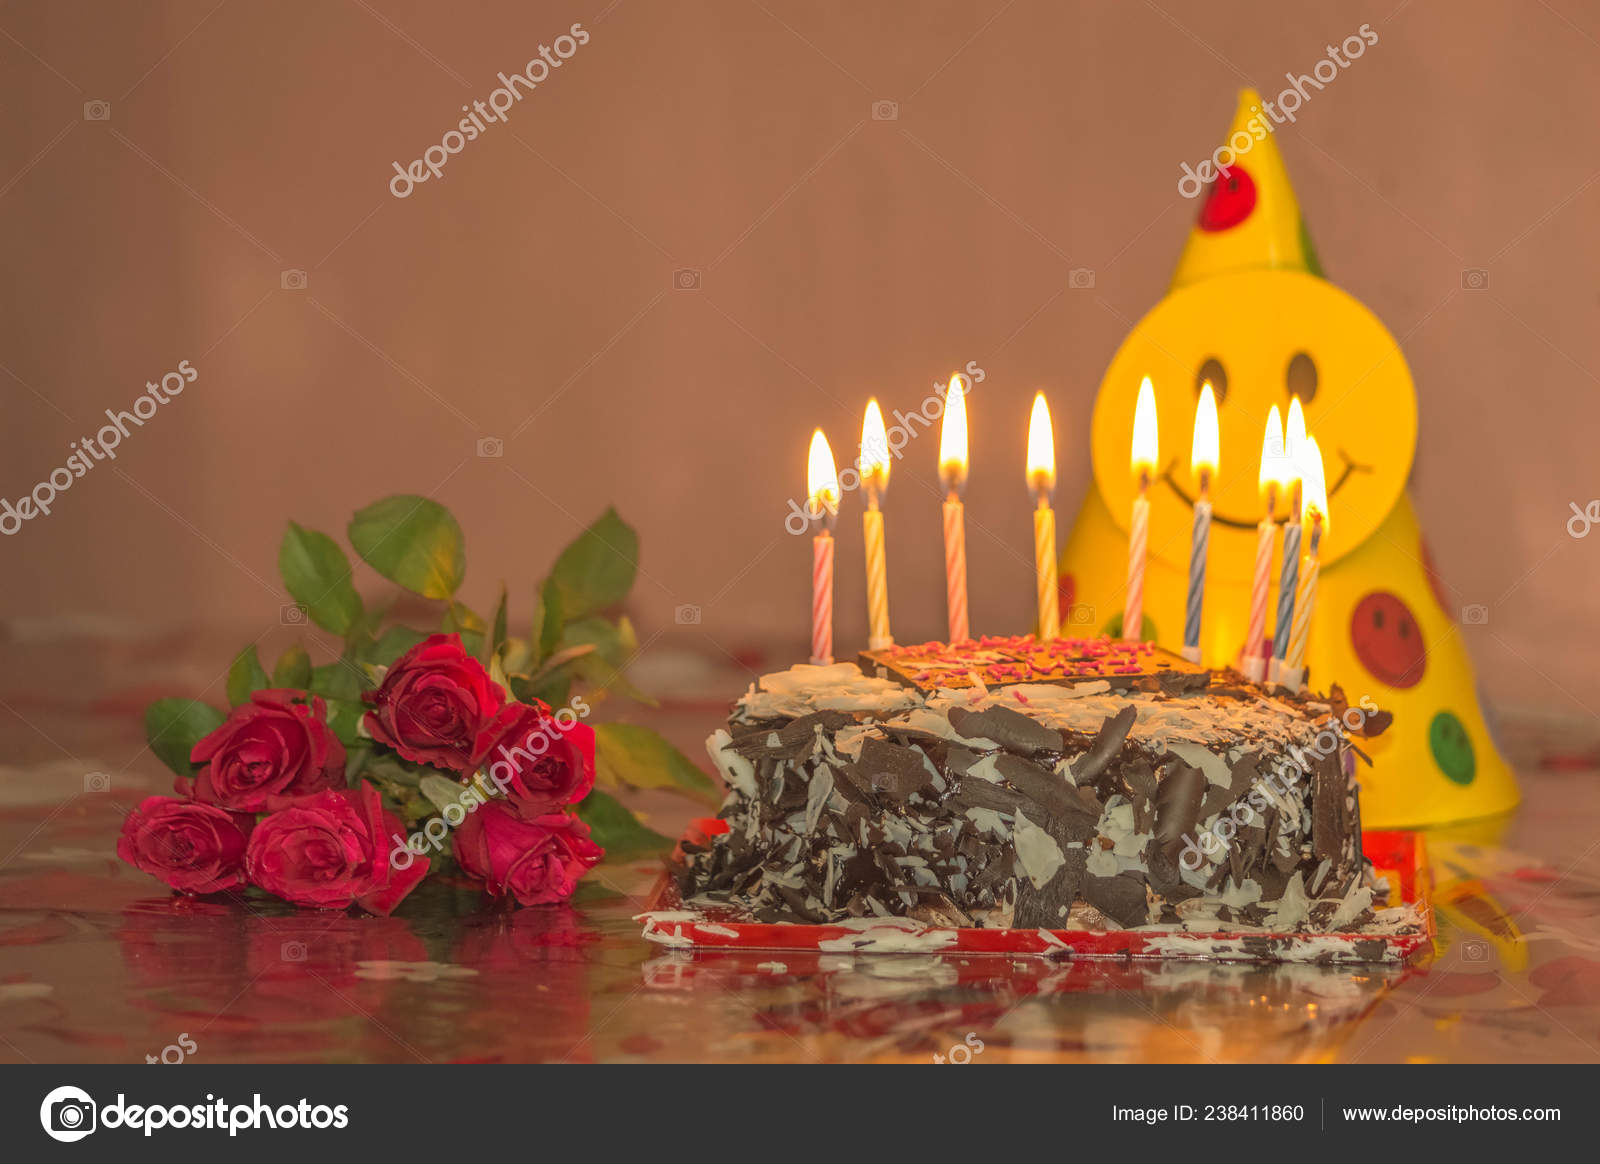 Chocolate Cake Candles Red Rose Valentines Day Mothers Birthday Stock Photo